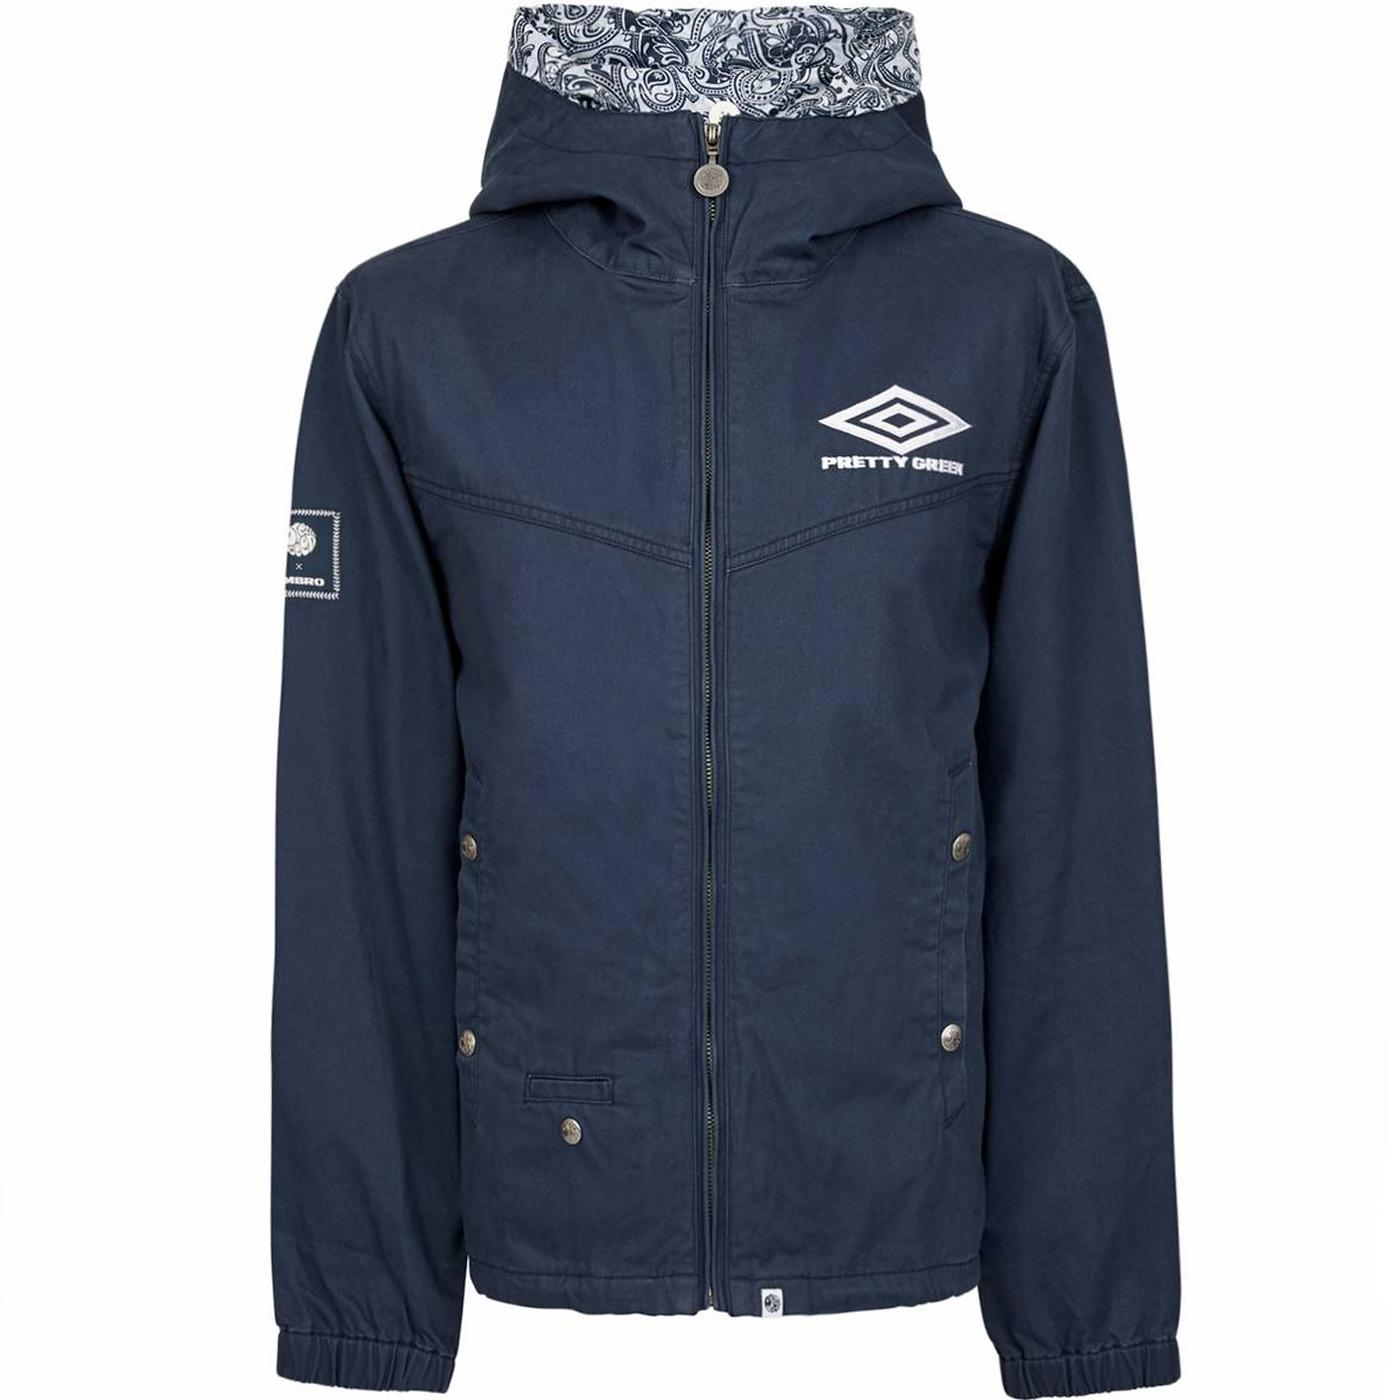 A9GMU00065757 umbro cotton zip up hooded jacket na